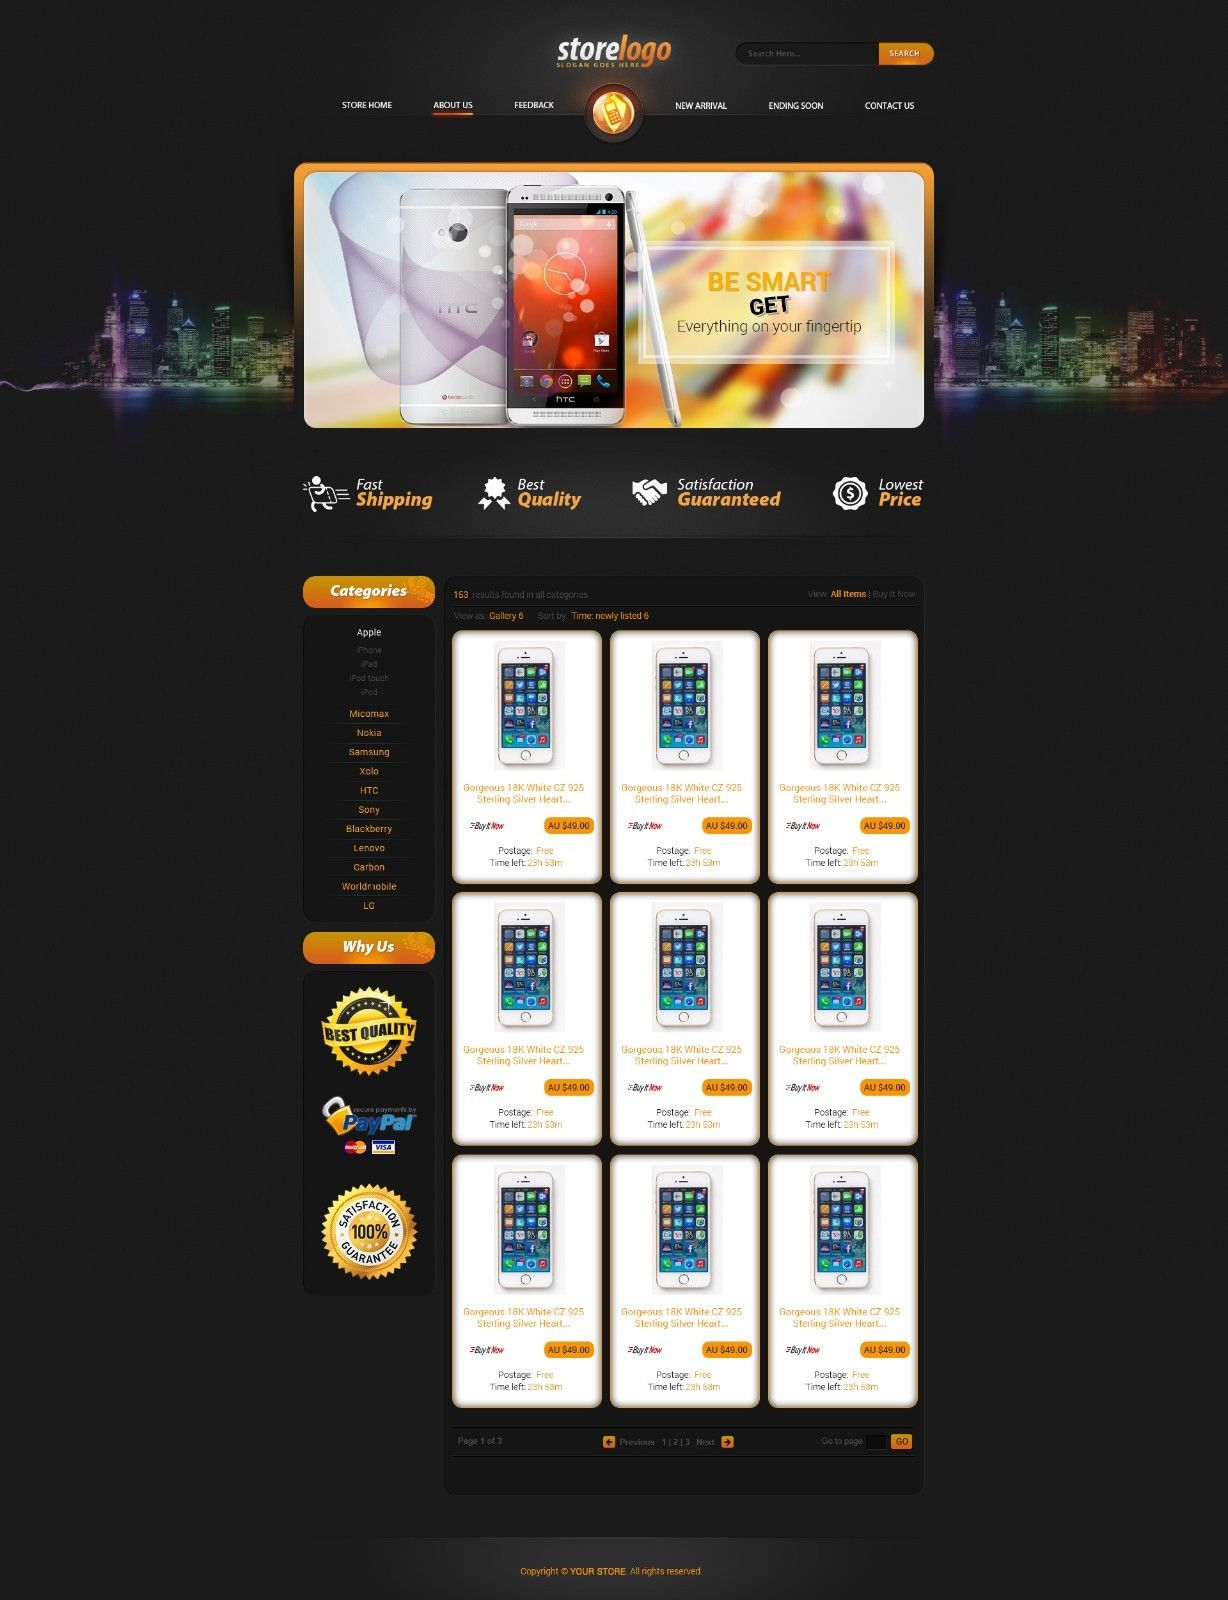 Free Html Ebay Template How To Use Free Template Html IArtois - Free ebay templates html download